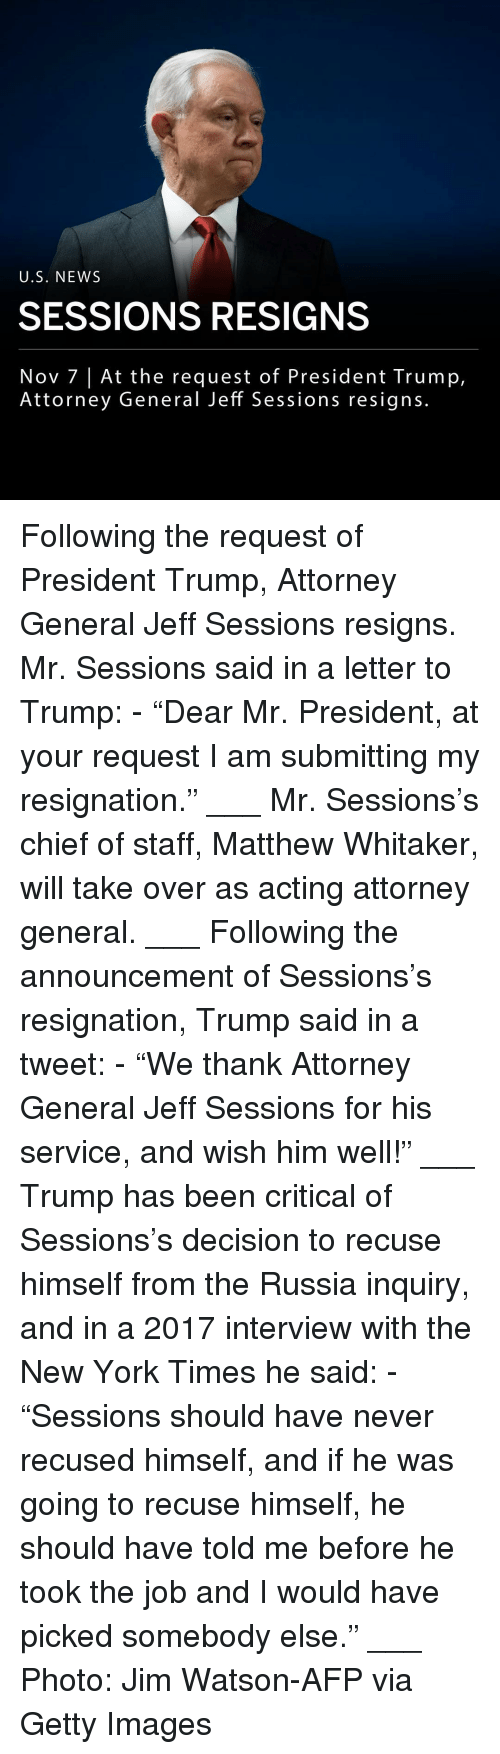 "attorney general: U.S. NEWS  SESSIONS RESIGNS  Nov 7 |At the request of President Trump,  Attorney General Jeff Sessions resigns. Following the request of President Trump, Attorney General Jeff Sessions resigns. Mr. Sessions said in a letter to Trump: - ""Dear Mr. President, at your request I am submitting my resignation."" ___ Mr. Sessions's chief of staff, Matthew Whitaker, will take over as acting attorney general. ___ Following the announcement of Sessions's resignation, Trump said in a tweet: - ""We thank Attorney General Jeff Sessions for his service, and wish him well!"" ___ Trump has been critical of Sessions's decision to recuse himself from the Russia inquiry, and in a 2017 interview with the New York Times he said: - ""Sessions should have never recused himself, and if he was going to recuse himself, he should have told me before he took the job and I would have picked somebody else."" ___ Photo: Jim Watson-AFP via Getty Images"